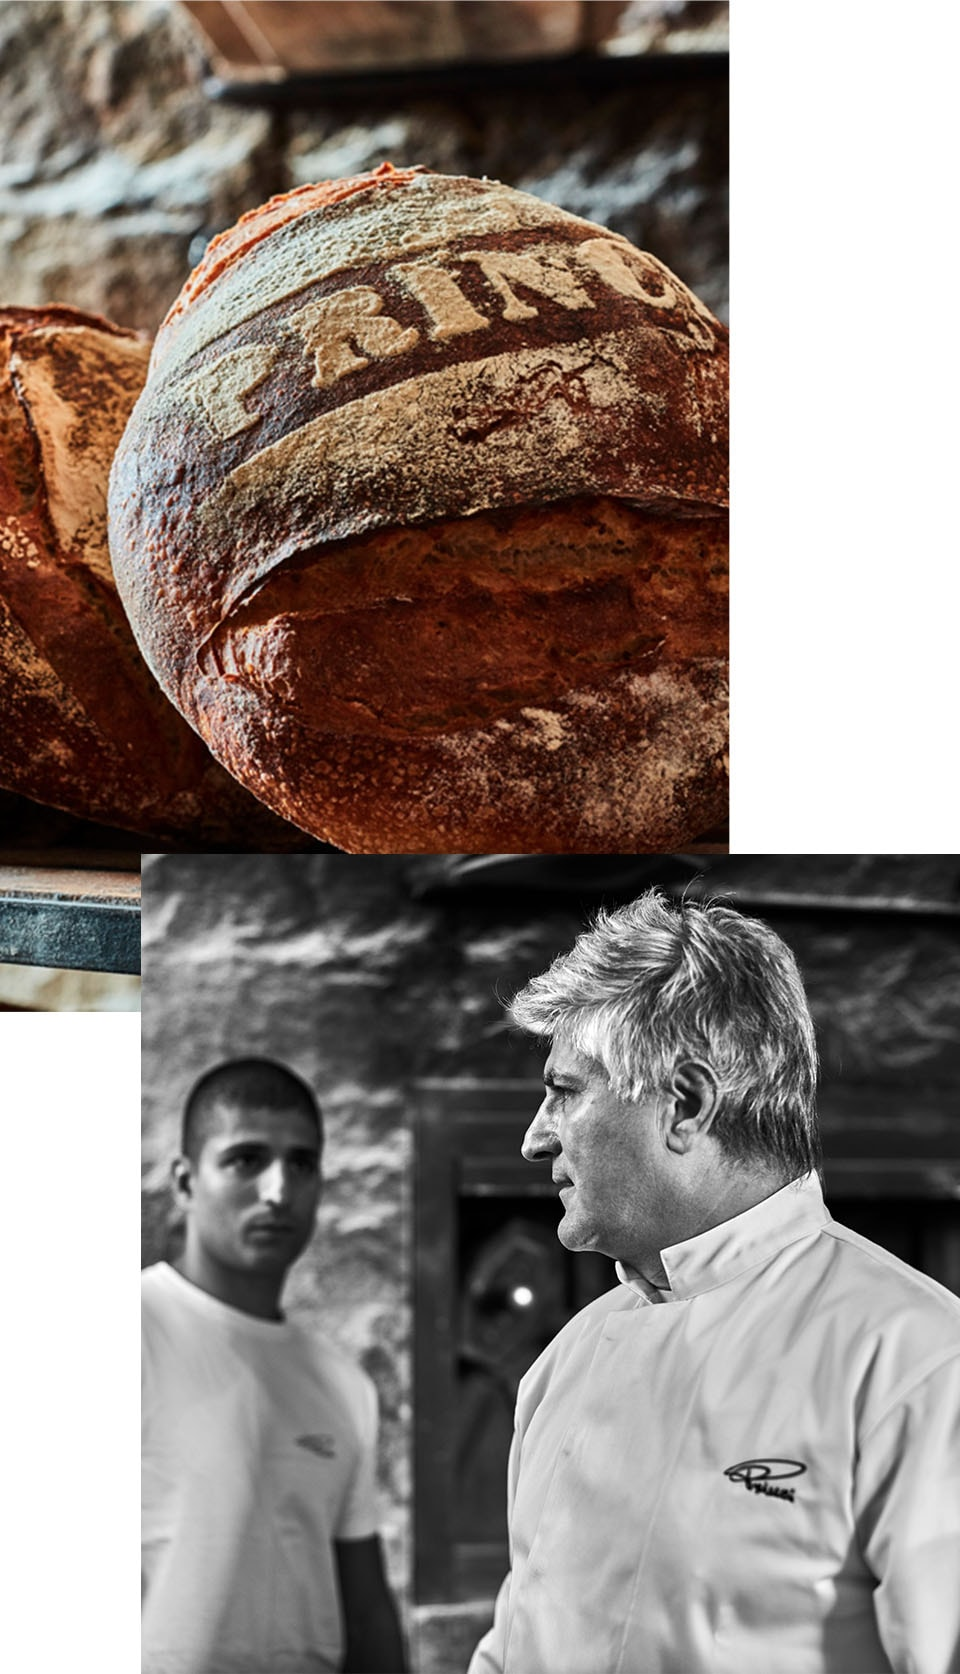 """Collage of a closeup of a loaf of bread that says """"Princi"""" and two men facing each other"""